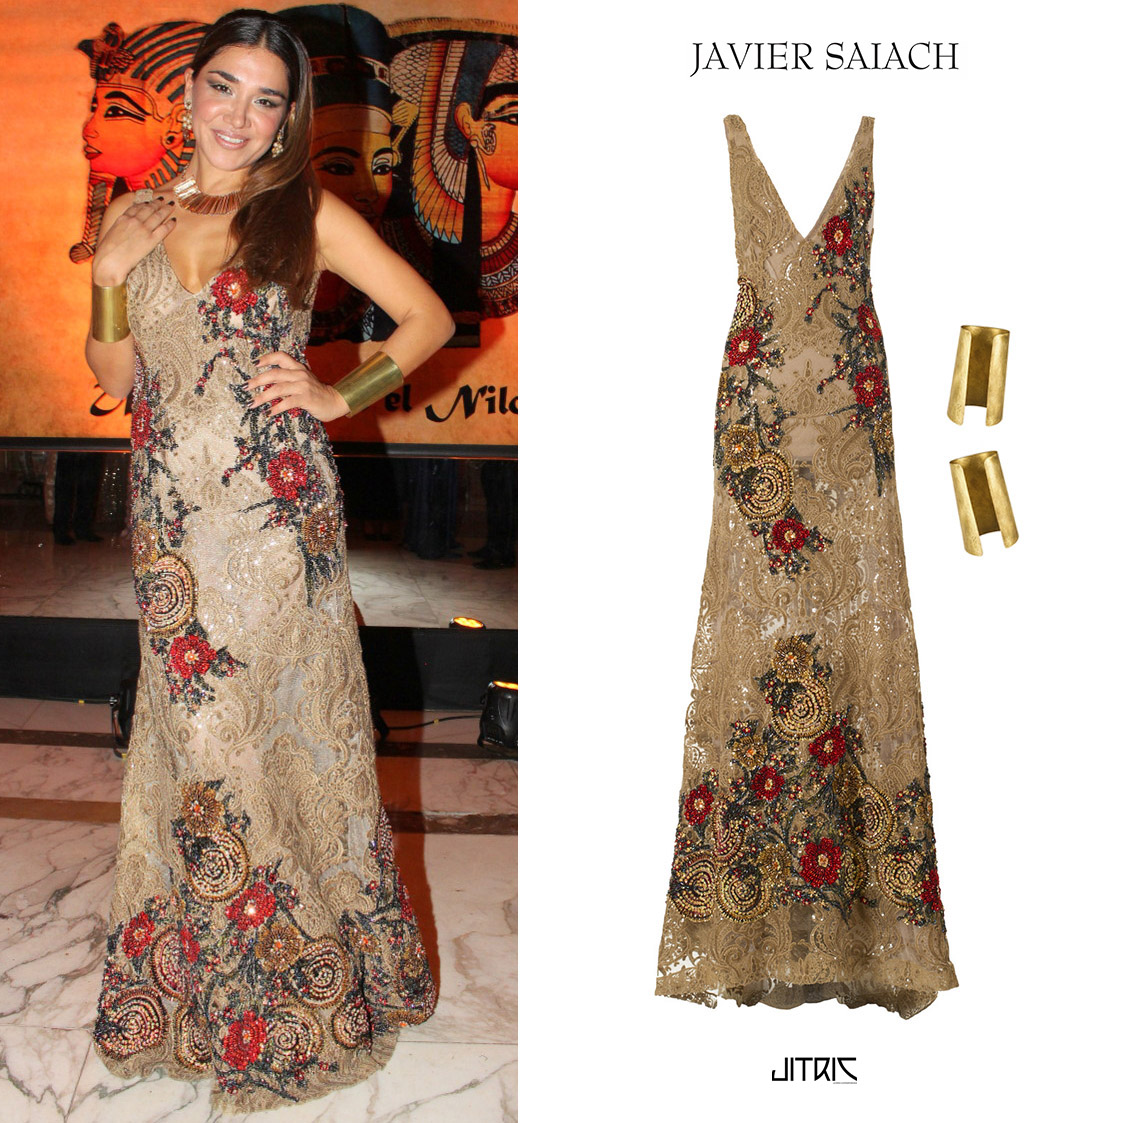 Vivi_Gallo_Make_a_Wish_Javier_Saiach_Dress_Vestido_Bordado_2015_Maximiliano_Jitric_Pulsera_Brazalete.jpg